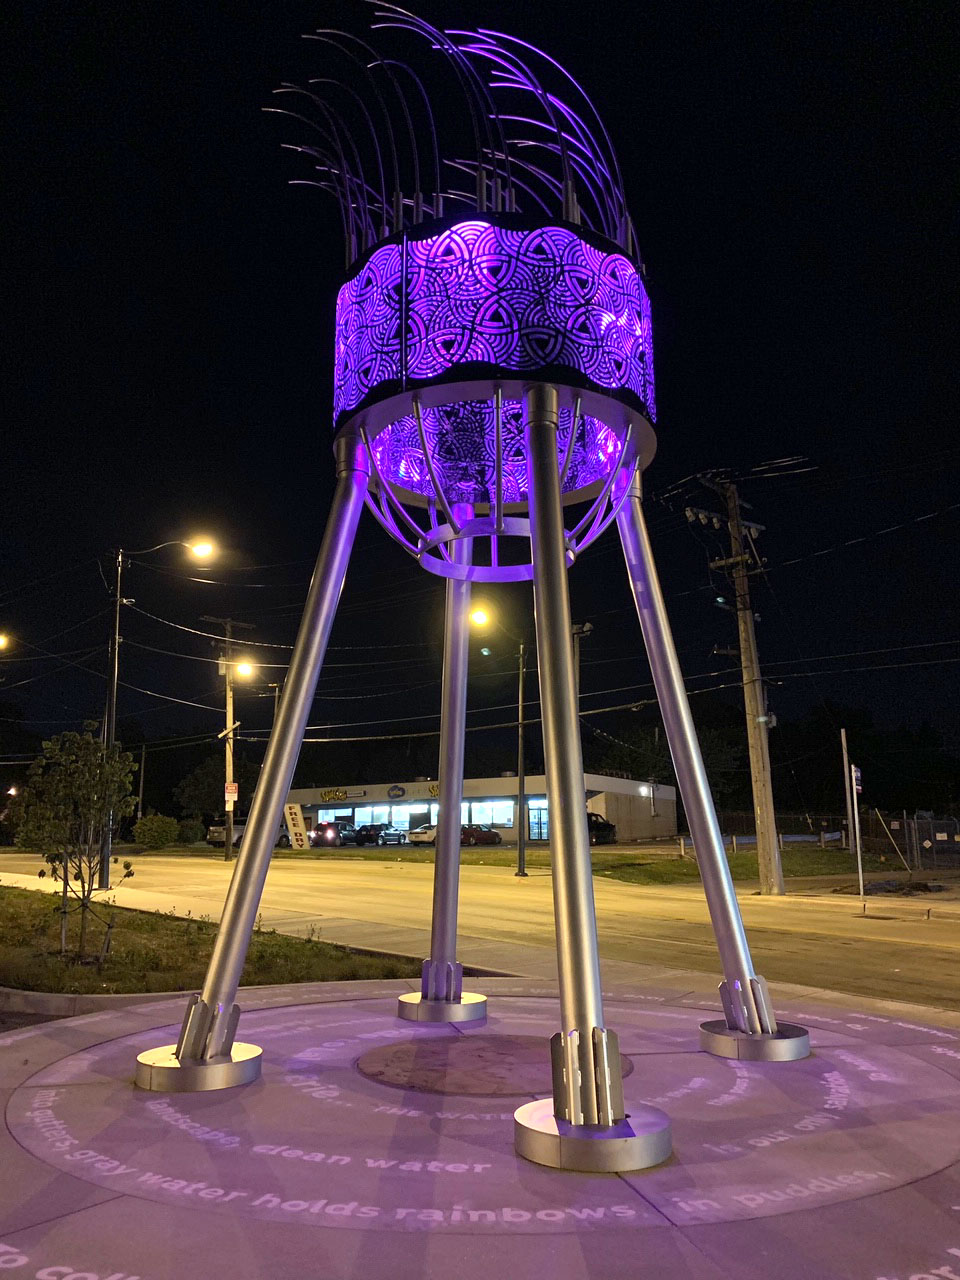 an illuminated water tower made from stainless steel above a poem inscribed on the pavement